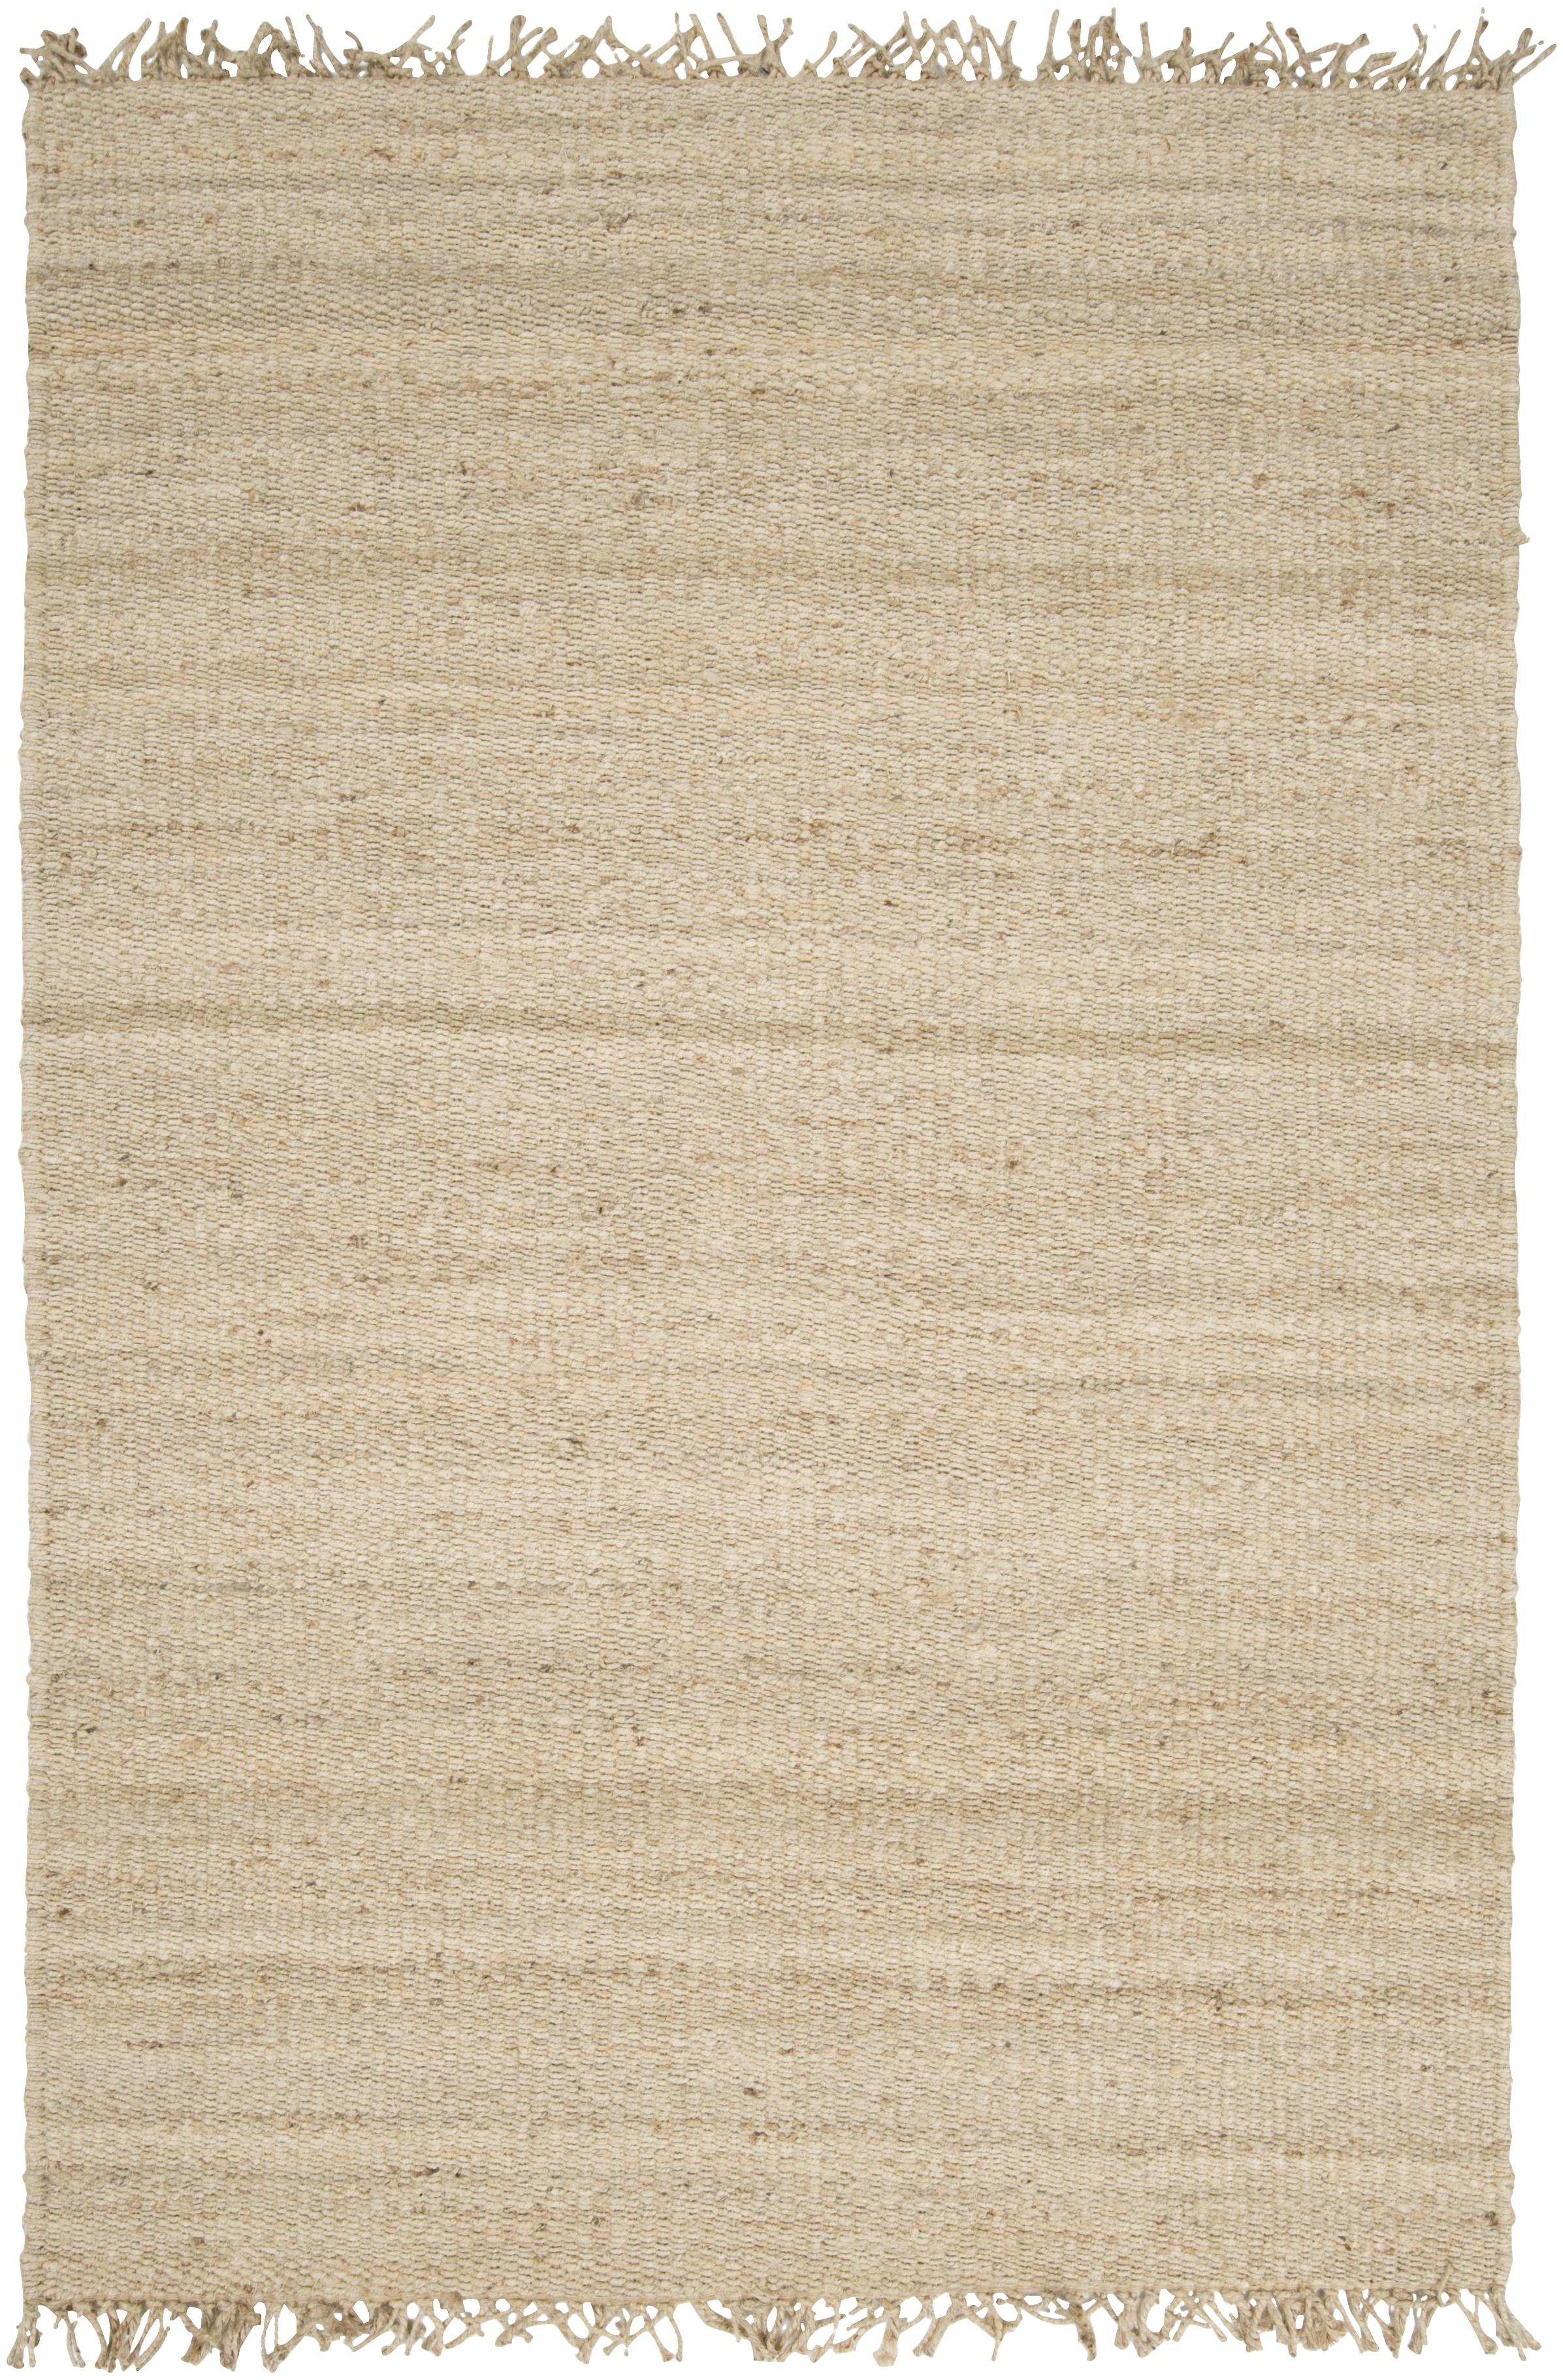 """Jute Bleached 5' x 7'6"""" by Ruby-Gordon Accents at Ruby Gordon Home"""